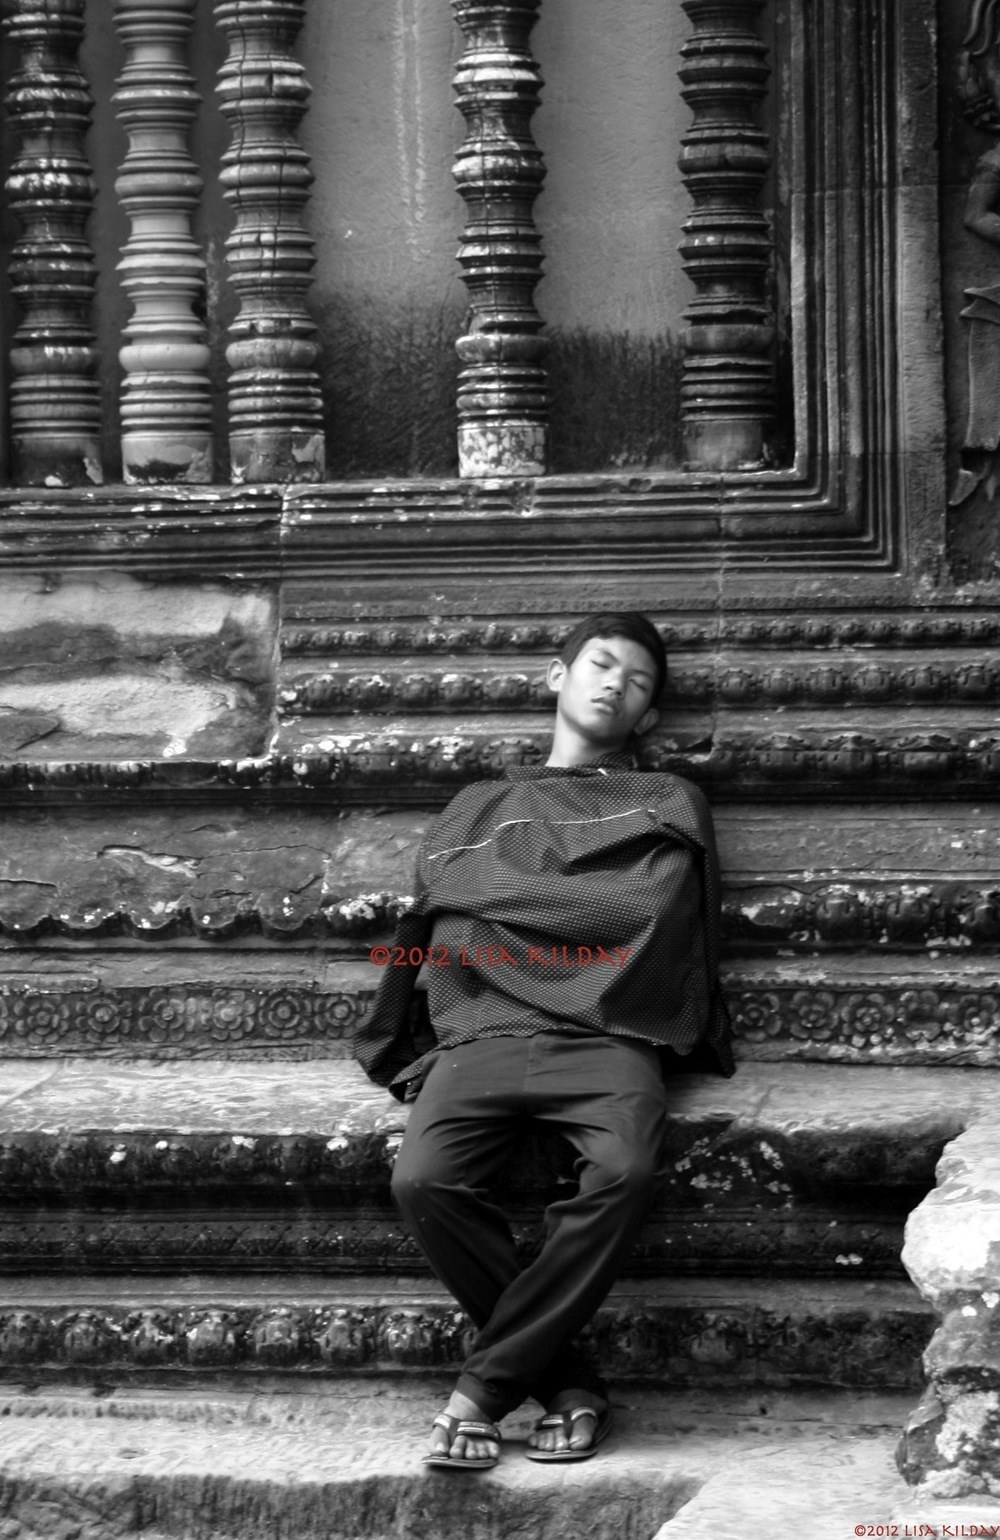 Lazy days in Angkor Wat